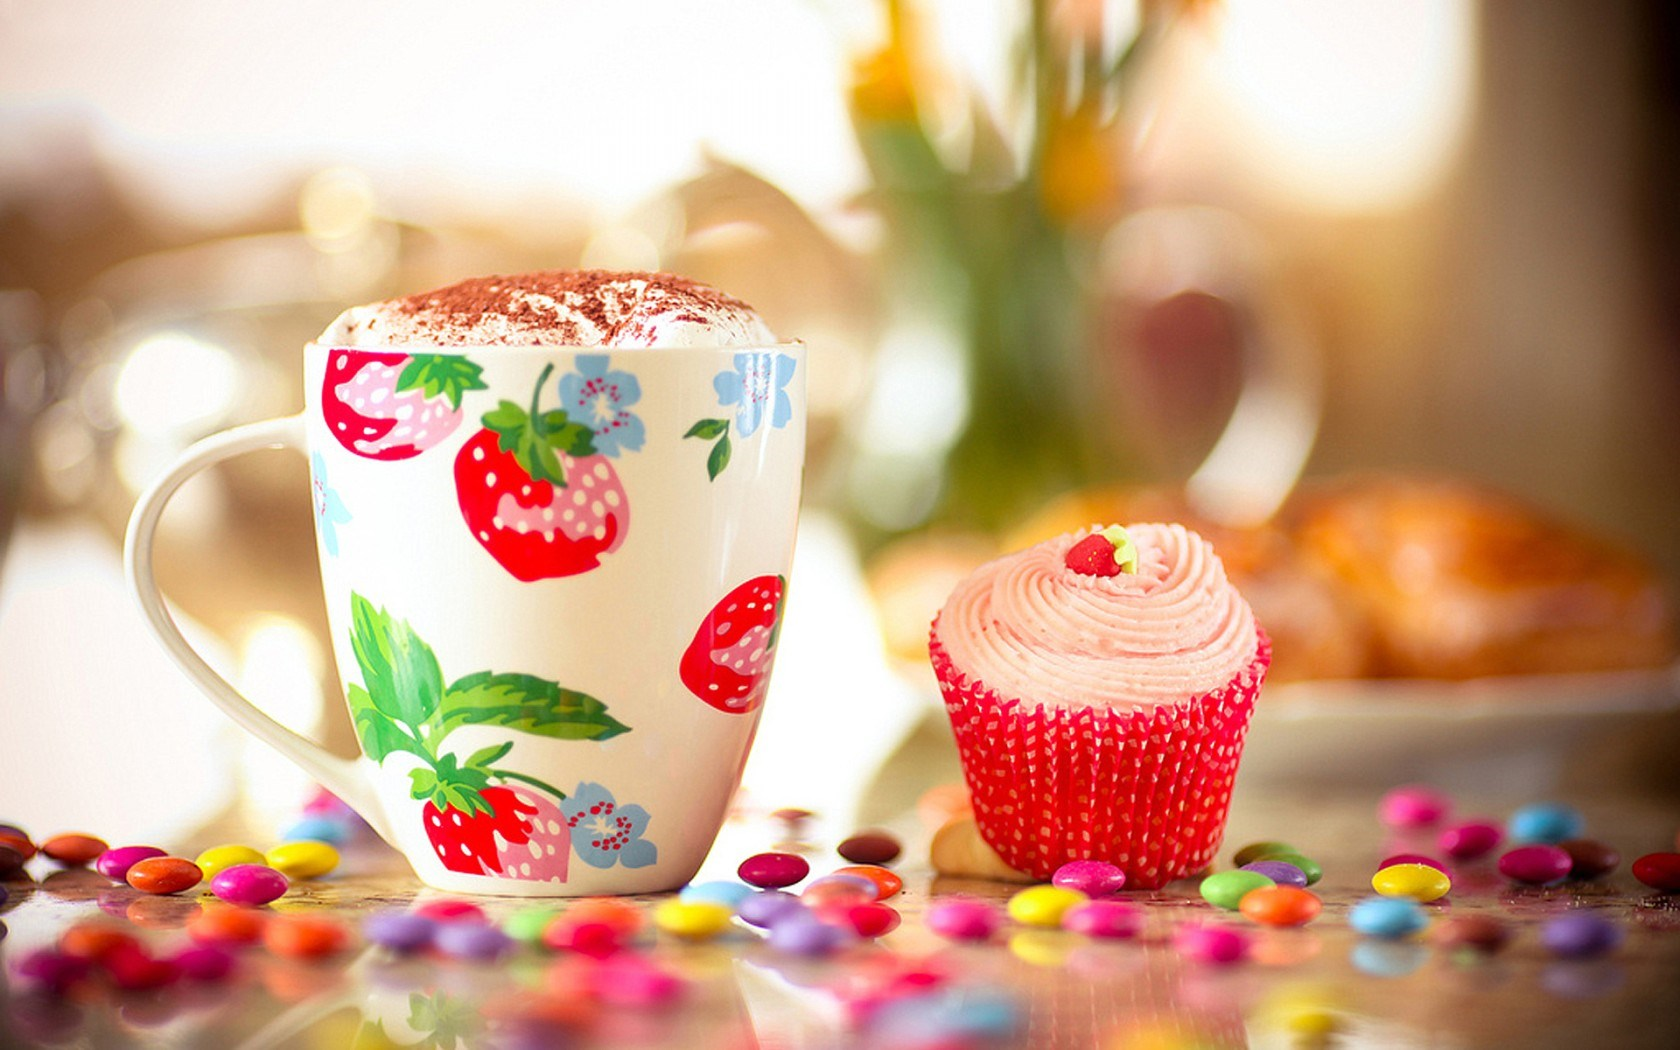 Mug Drink Foam Cake Candy Jelly Beans Food Wallpaper